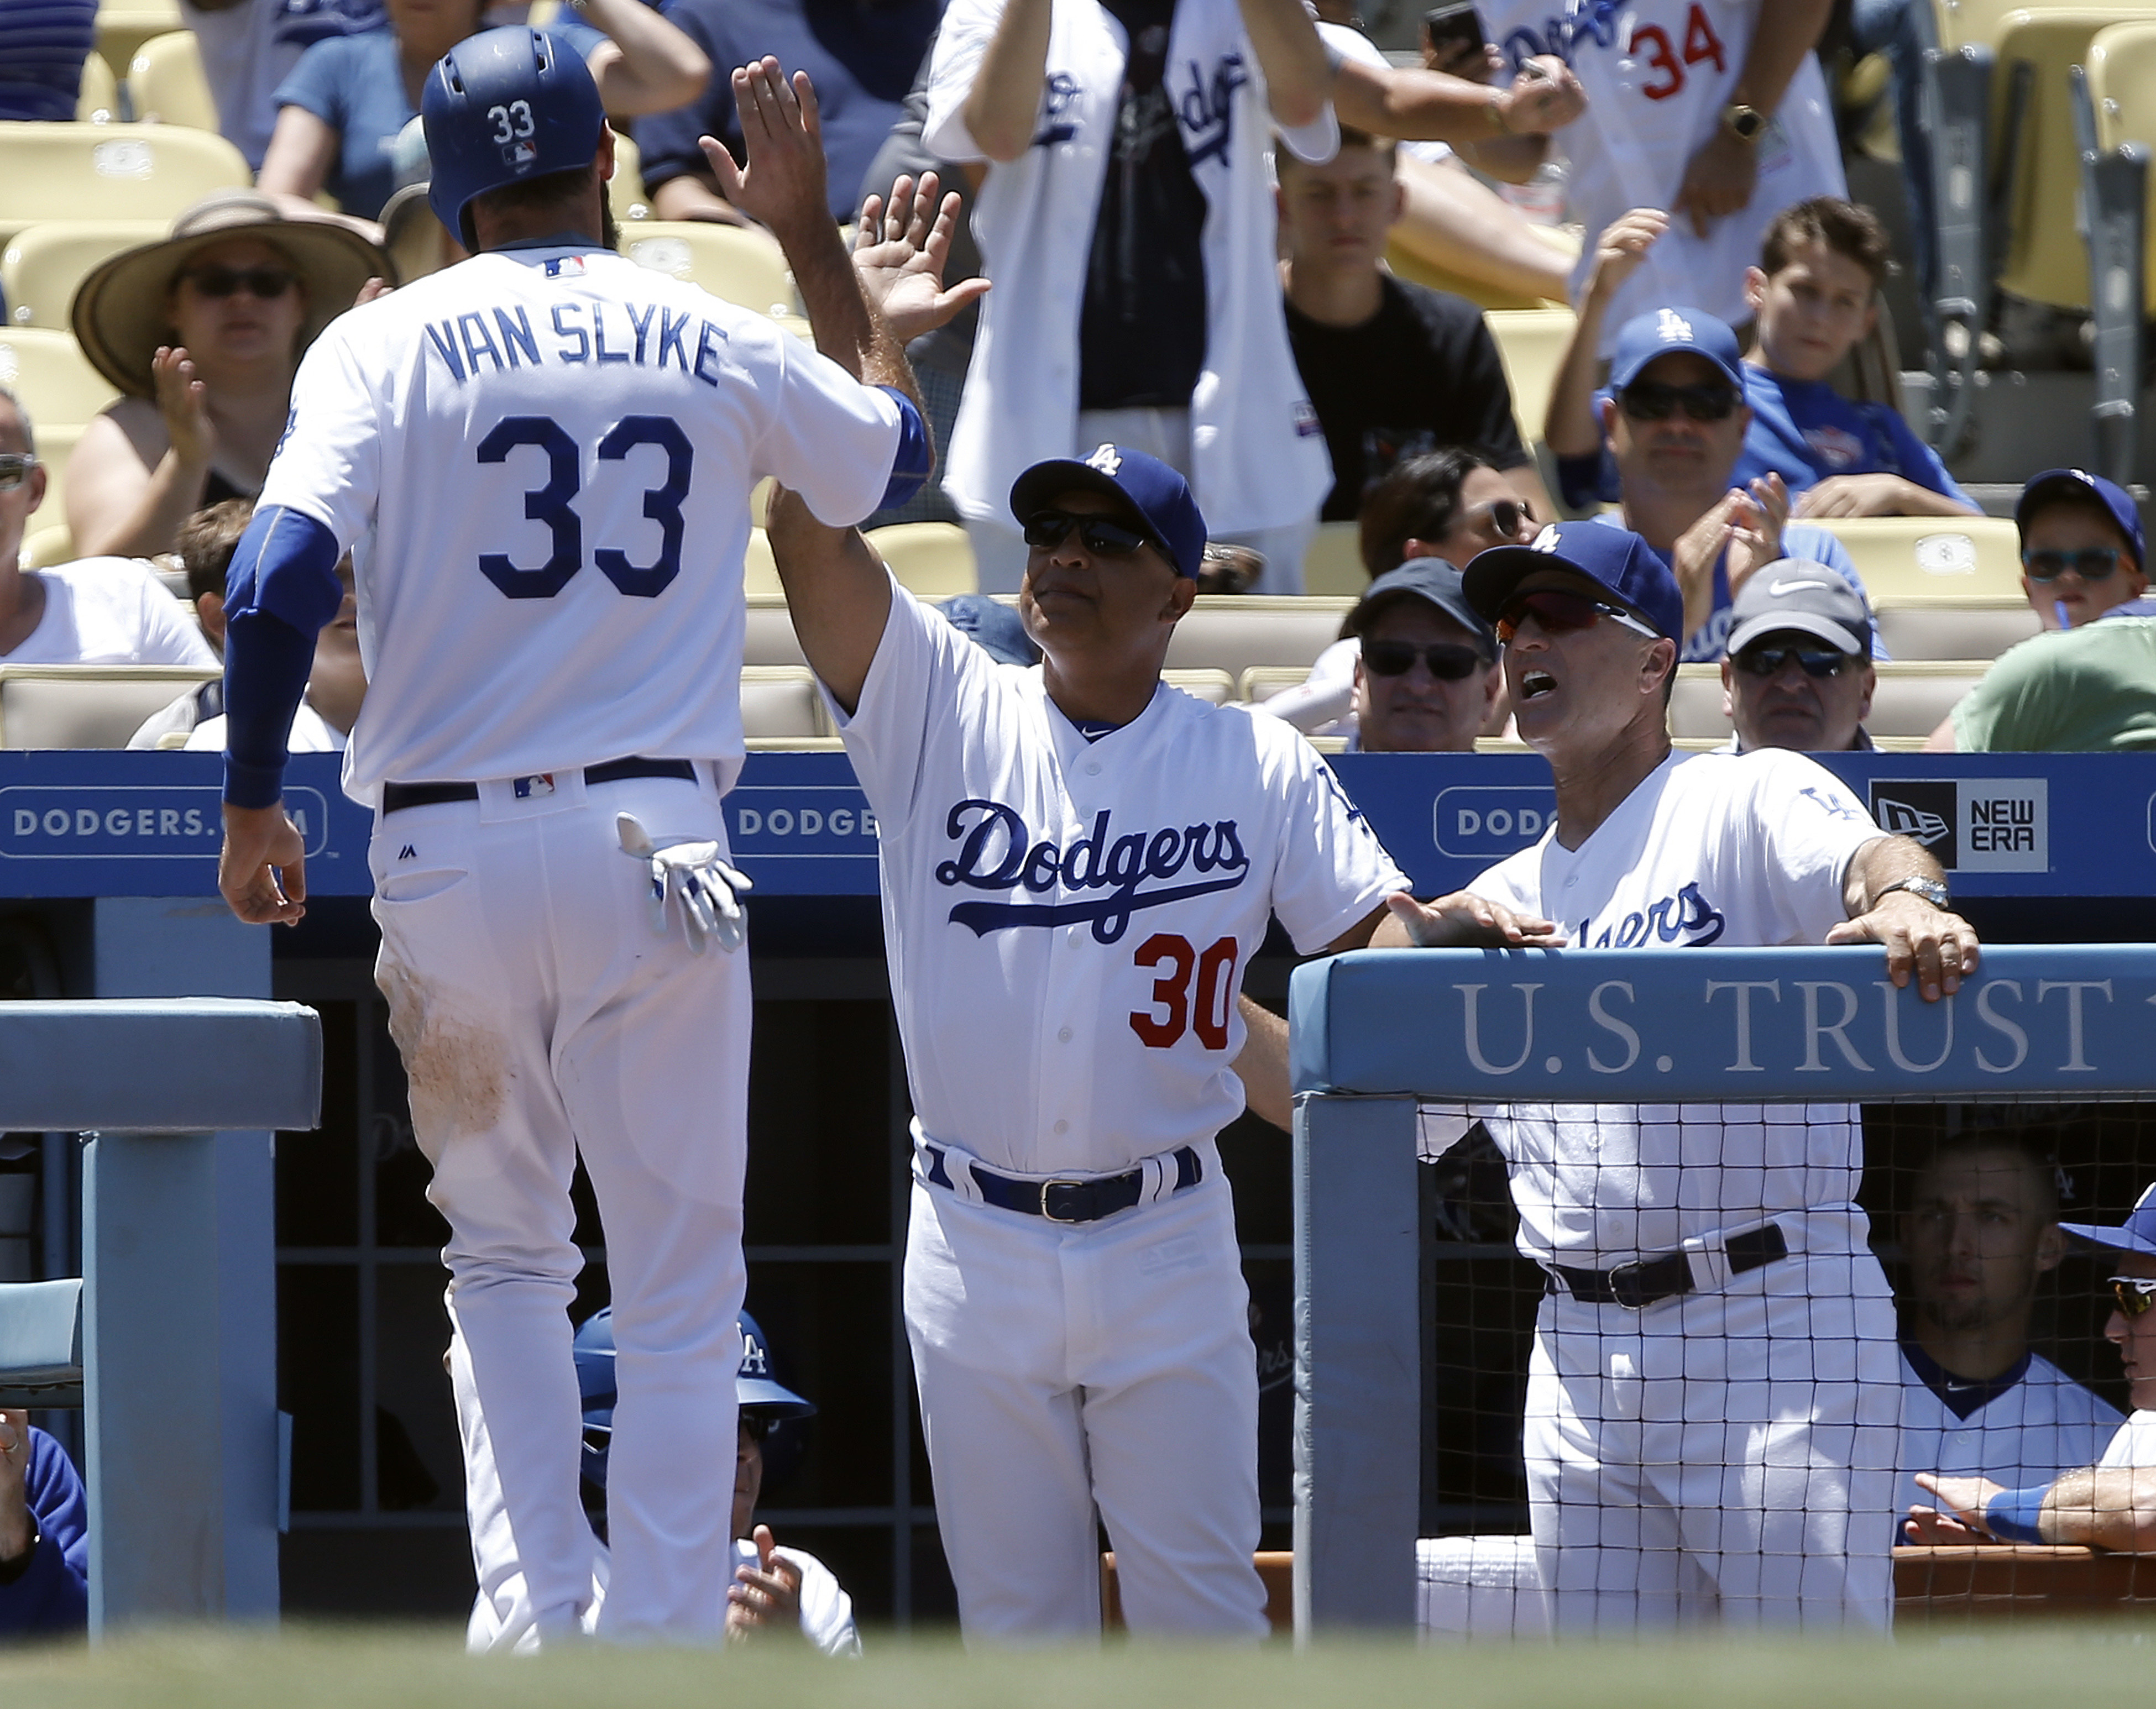 Los Angeles Dodgers' Scott Van Slyke, left, is congratulated by manager Dave Roberts, center, and coach Bob Geren, right, after scoring on a single by Howie Kendrick against the San Diego Padres during the second inning of a baseball game in Los Angeles,